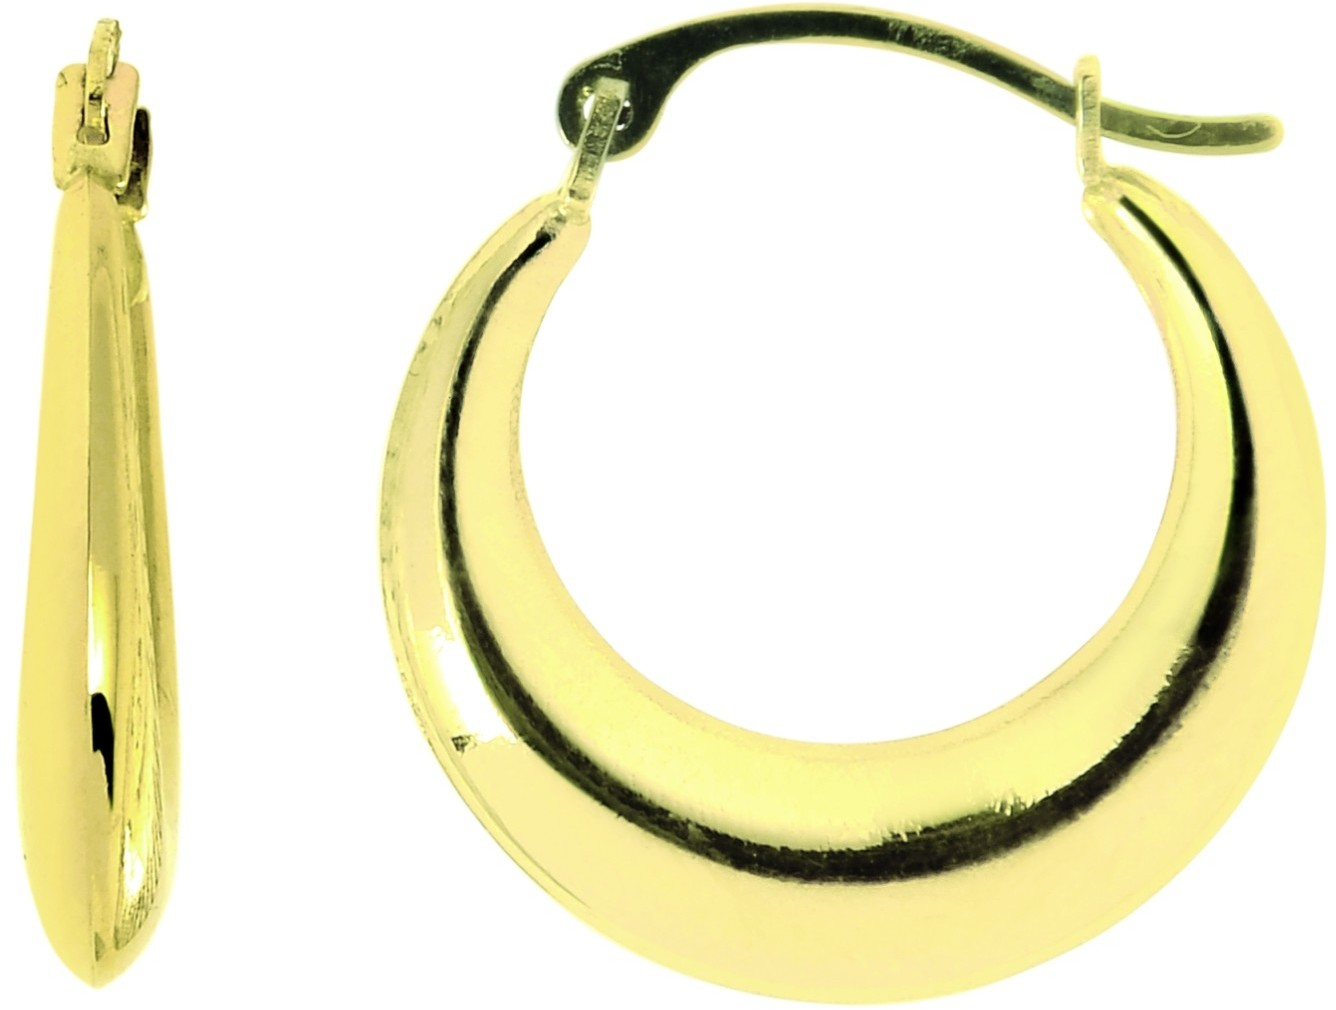 14K Yellow Gold Polished Graduated Hoop Earrings